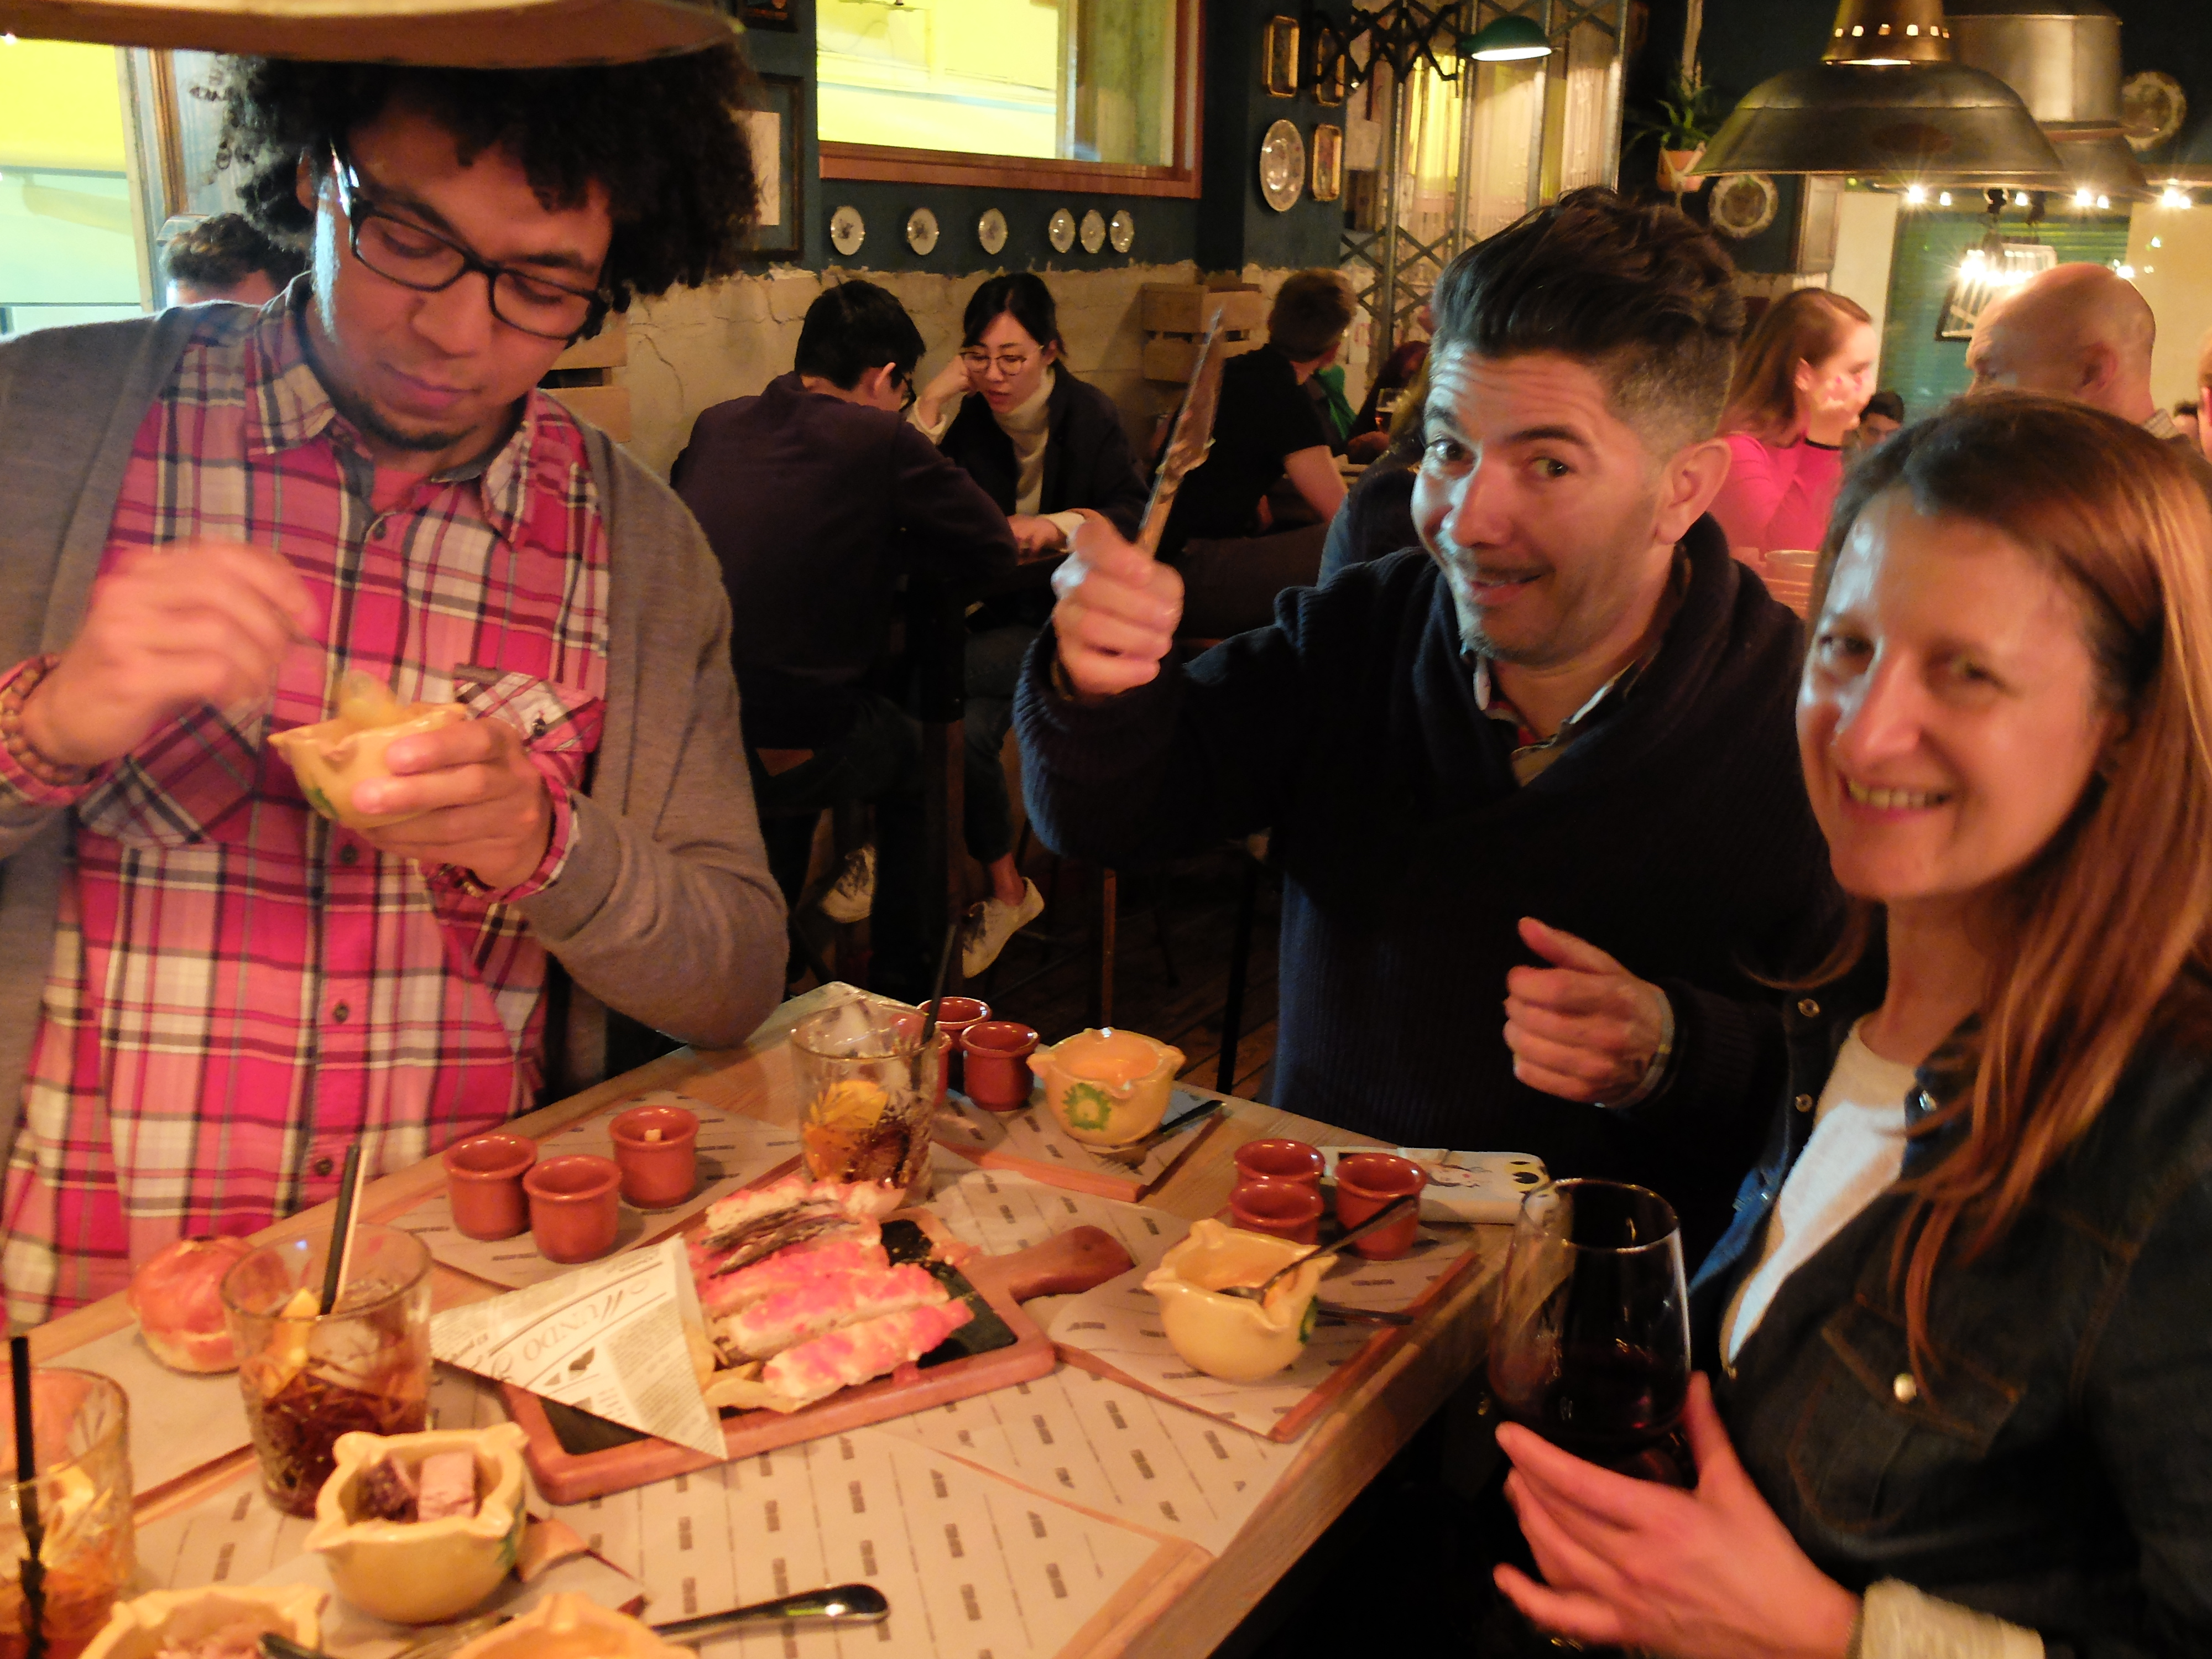 We love to have fun and explore cuisine on our food tours!